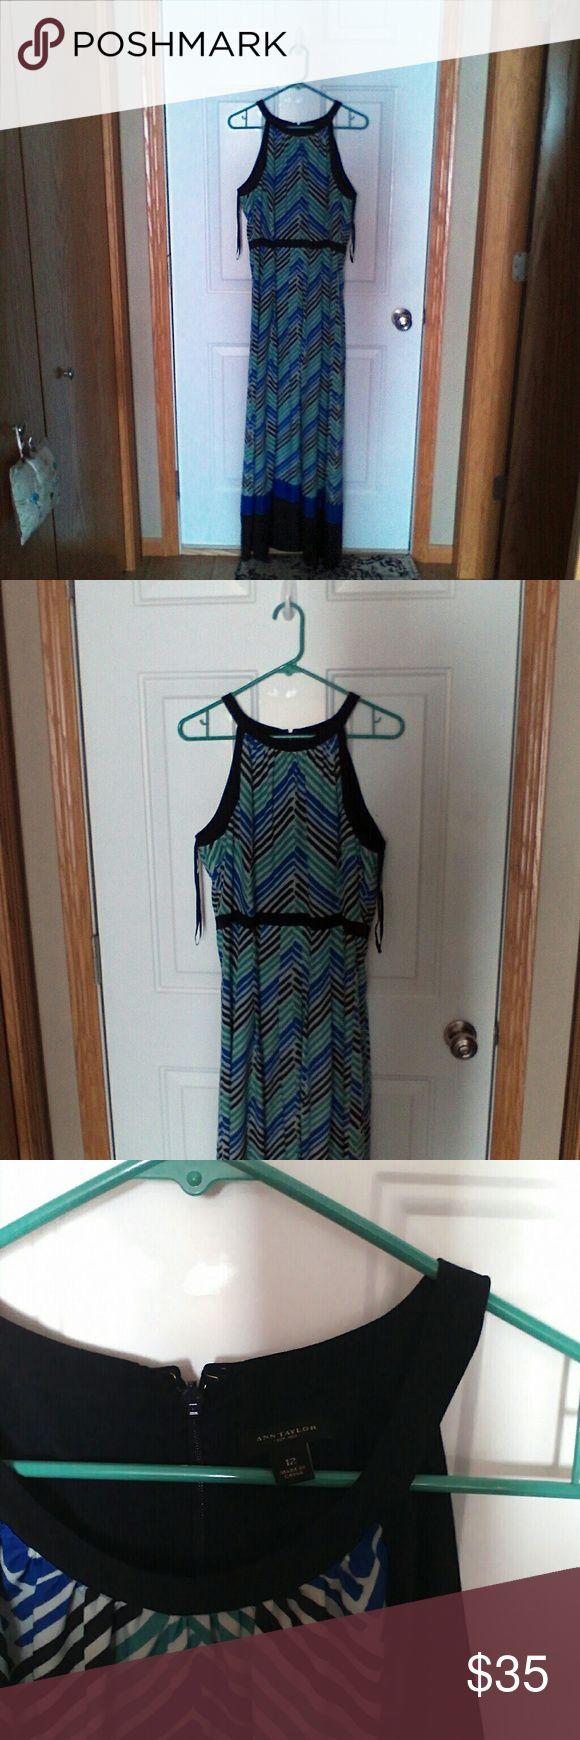 Chevron print maxi dress Ann Taylor chevron print maxi dress Ann Taylor Dresses Maxi